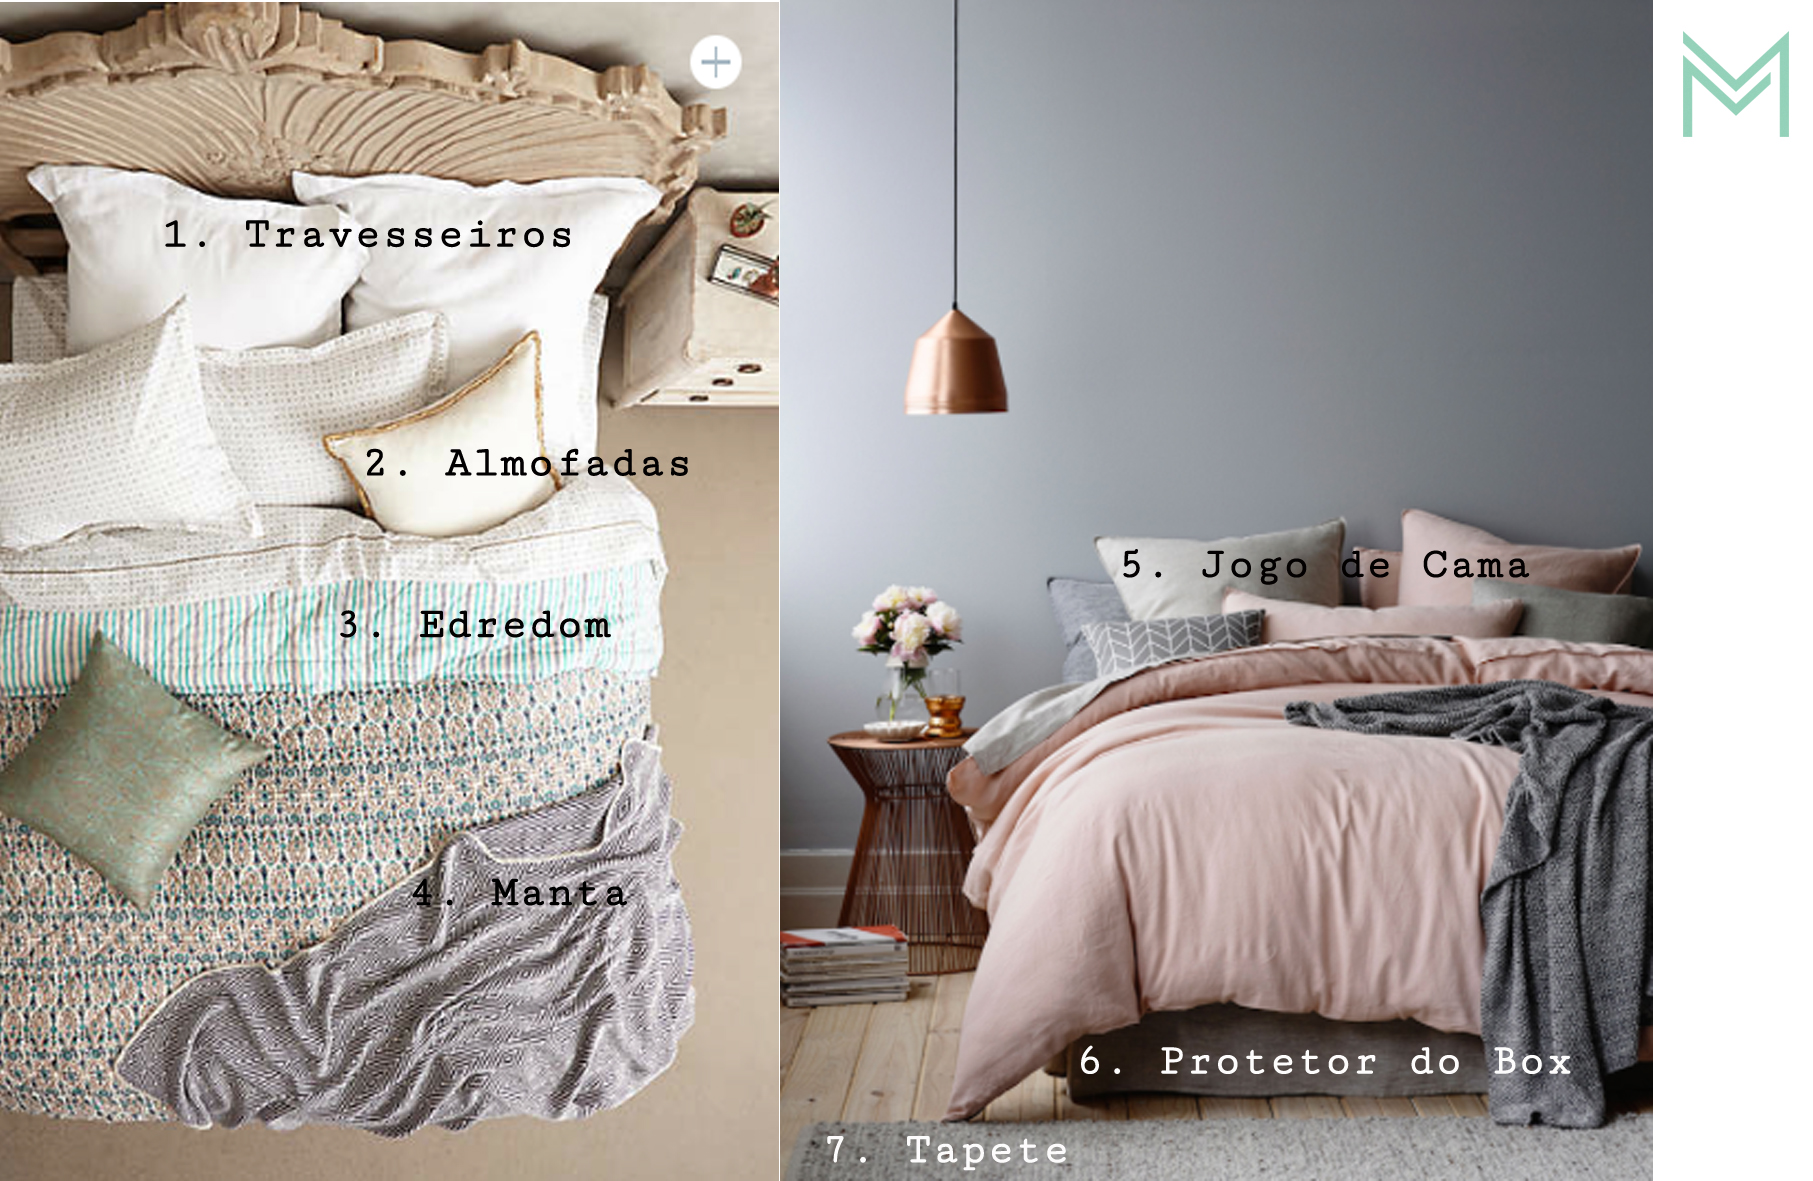 Fonte: Anthropologie e Norsu Interiors